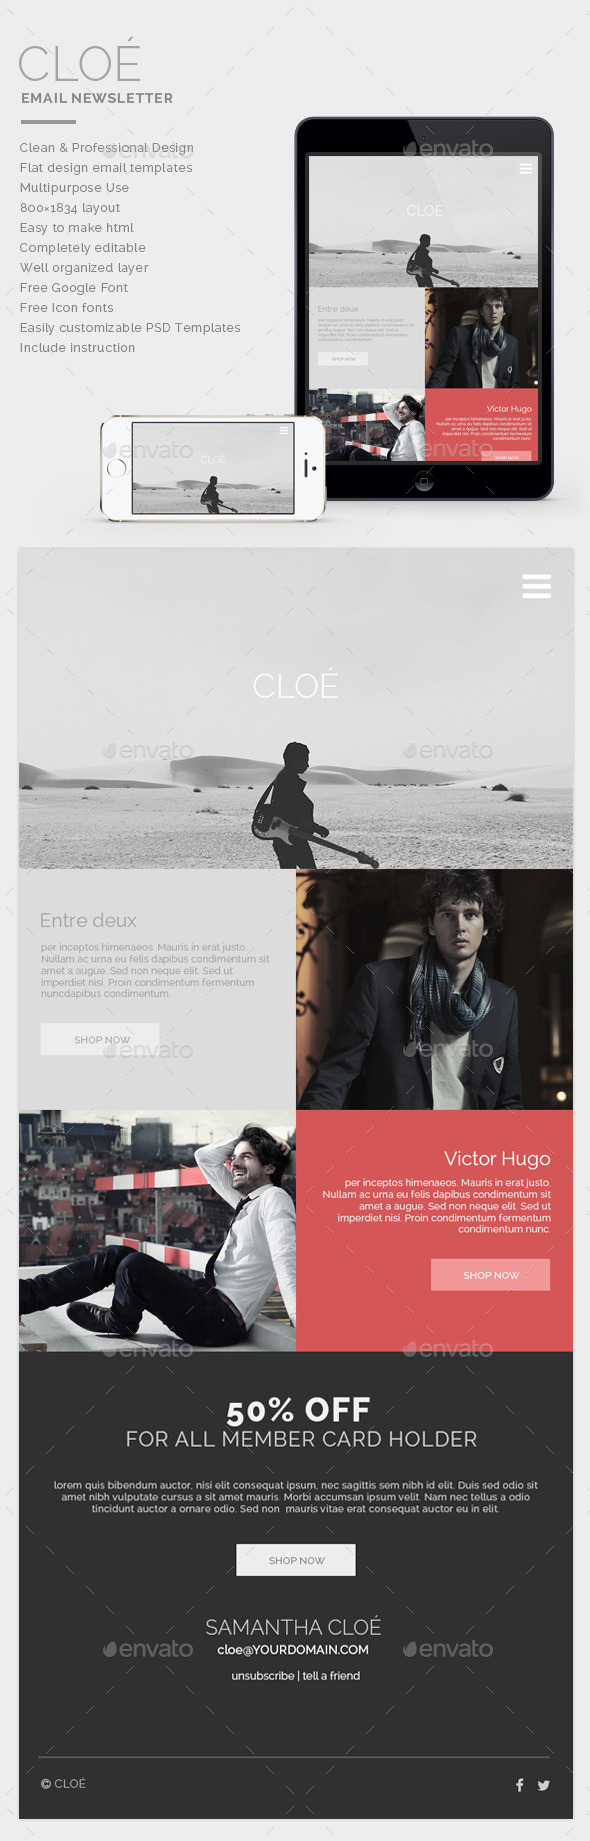 GraphicRiver Email Newsletter Cloe 9631344